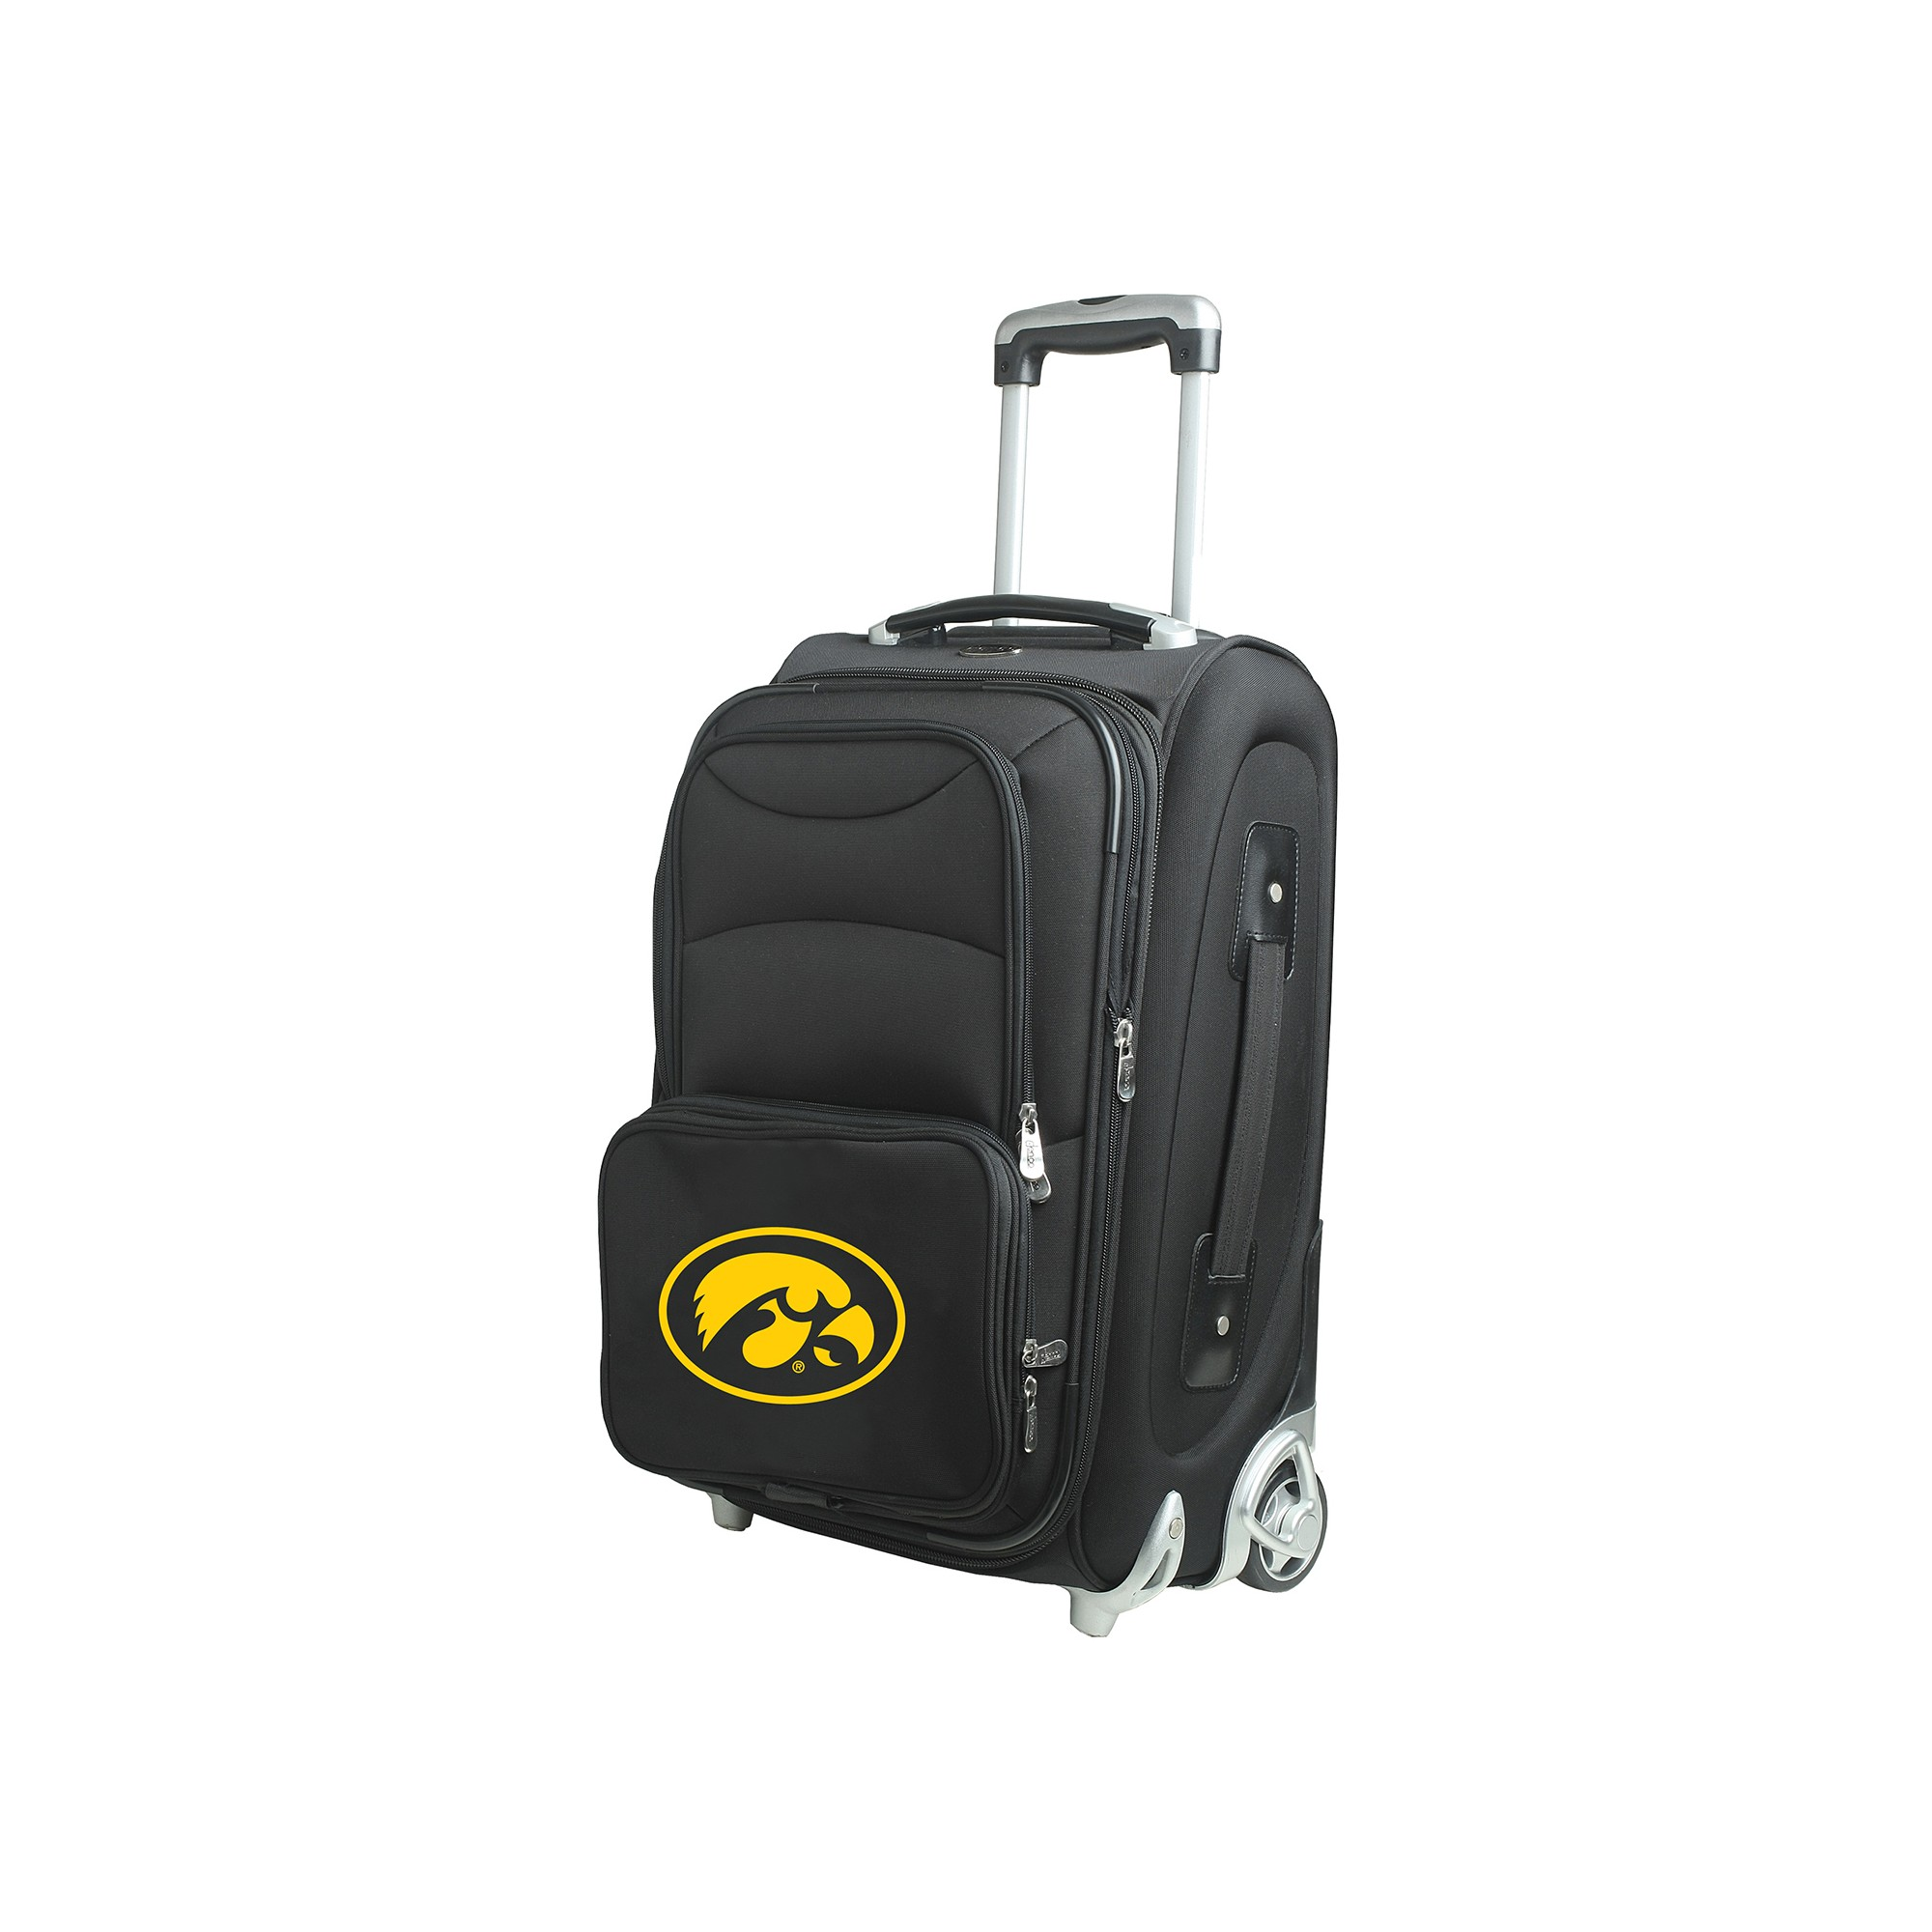 3b7d8f9cb742 NCAA Iowa Hawkeyes 21 Carry On Suitcase | Products | Carry on ...